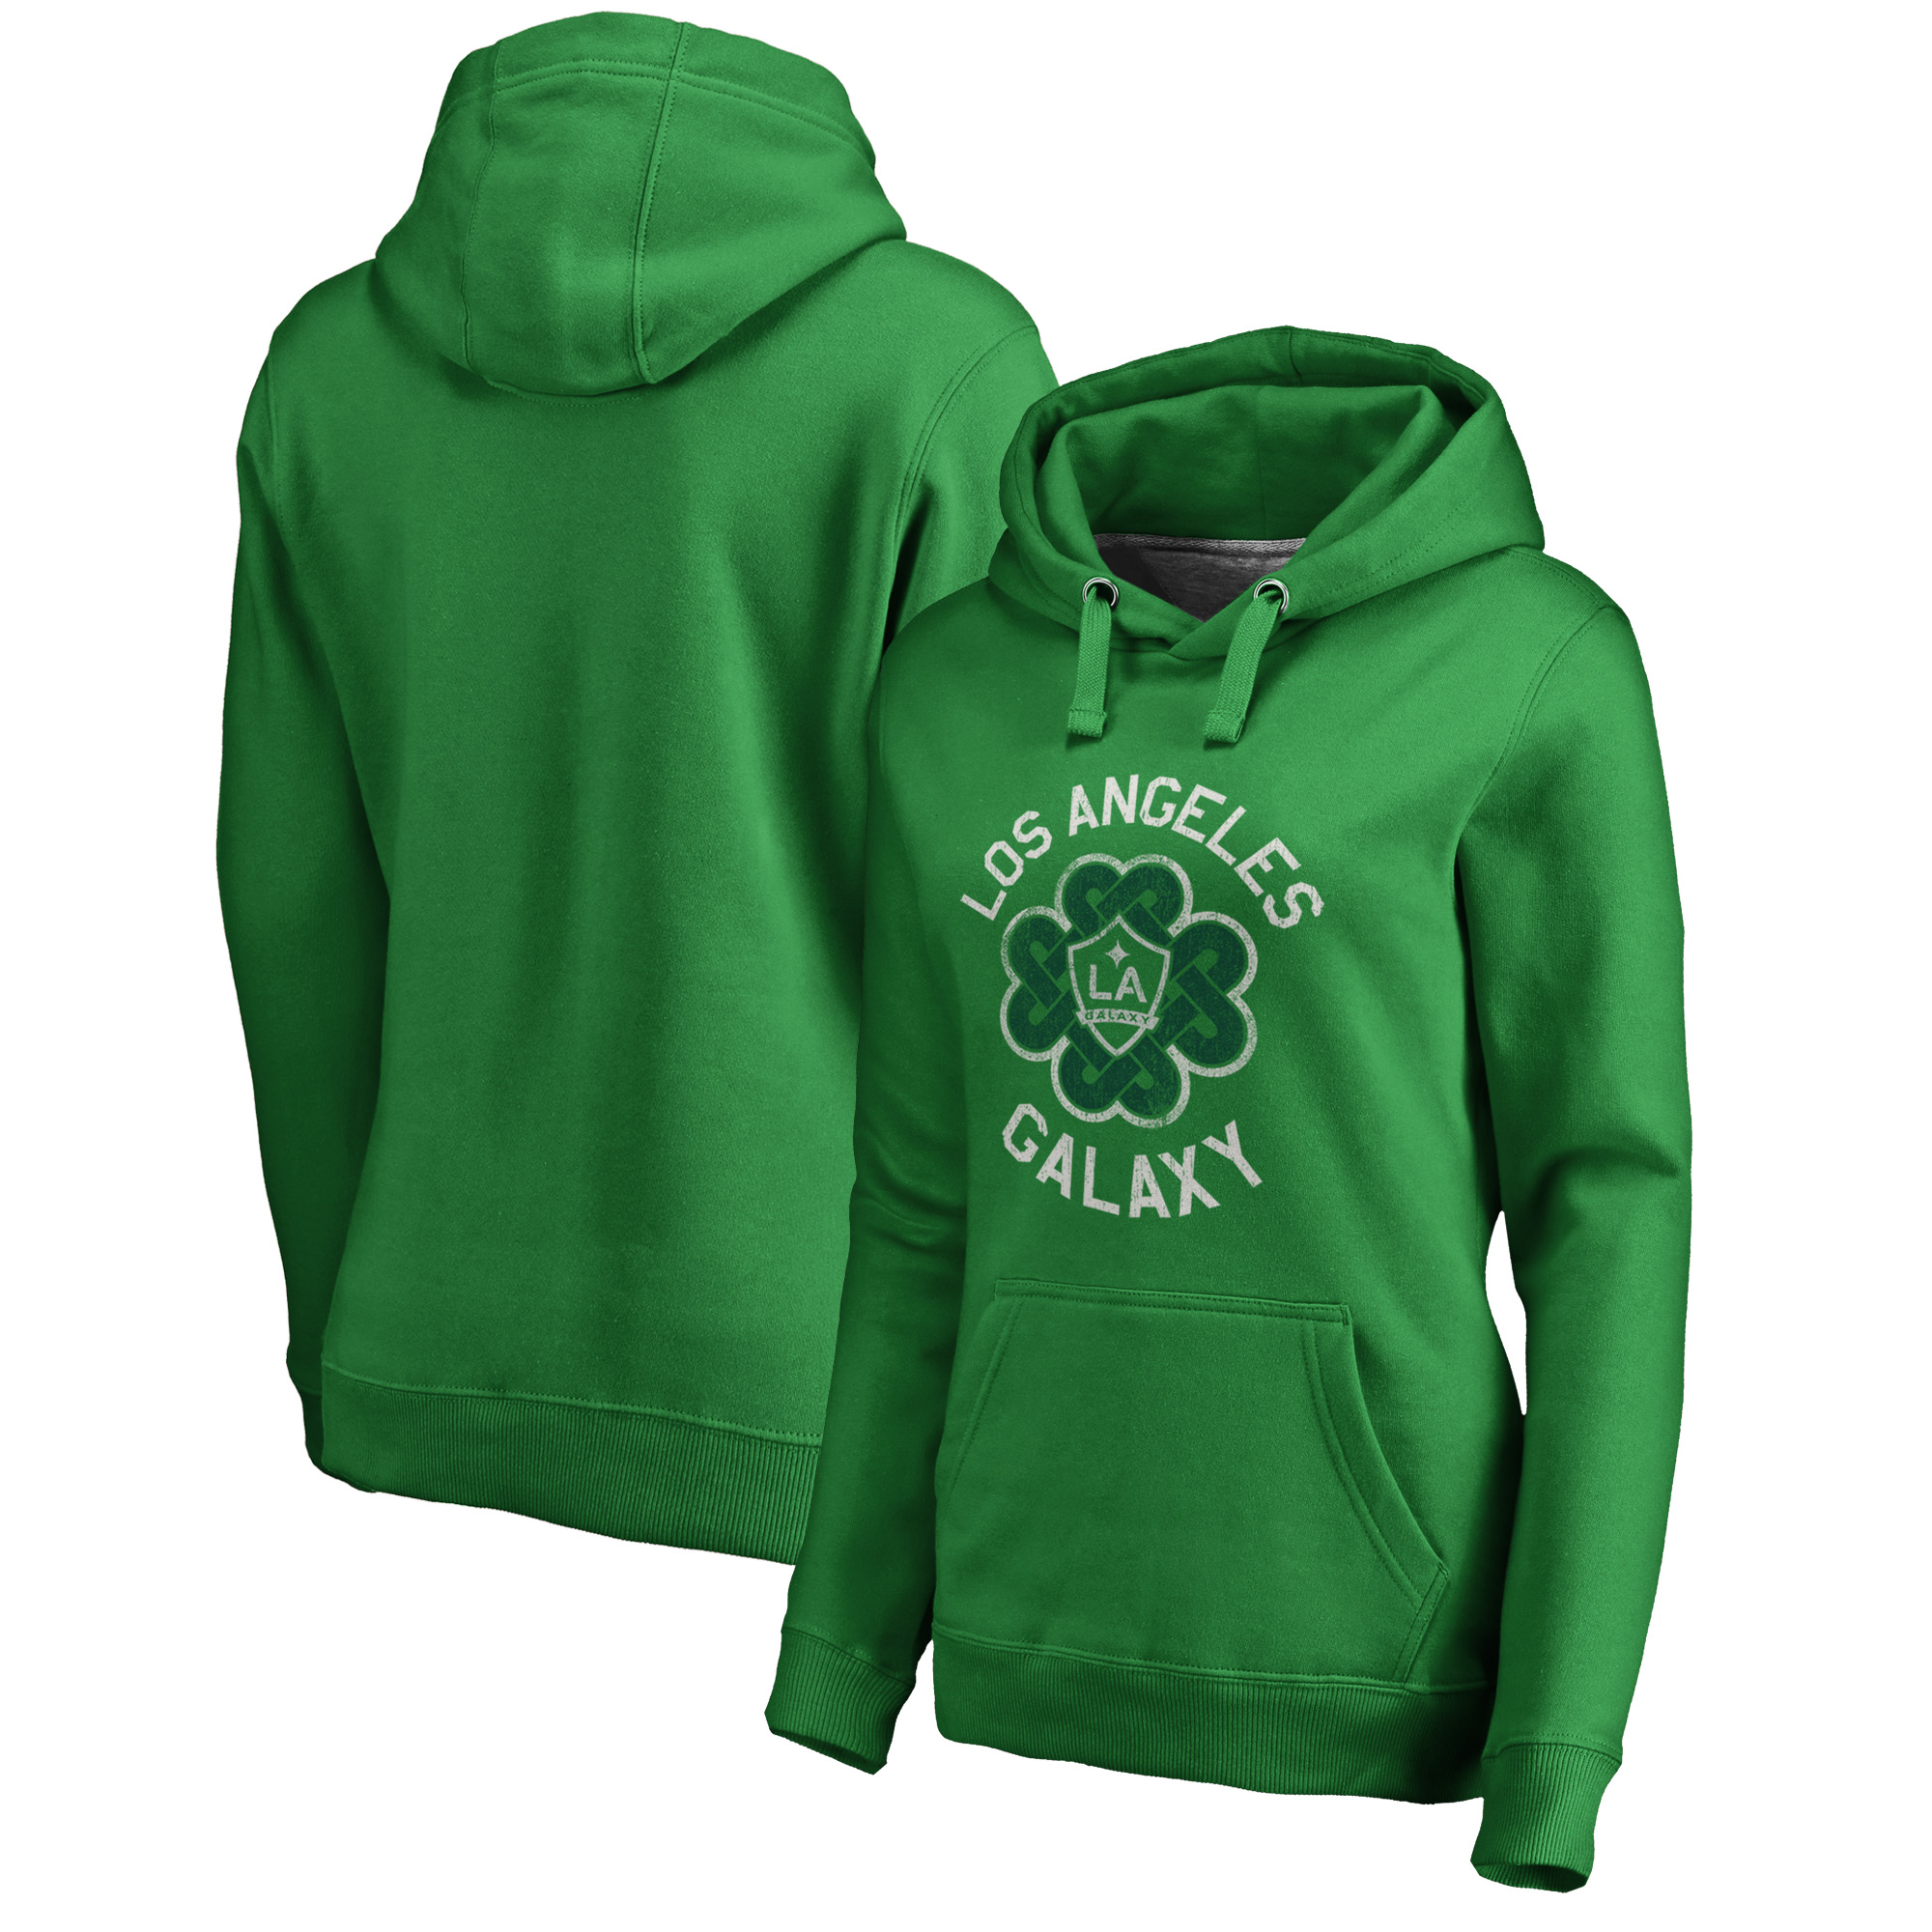 LA Galaxy Fanatics Branded Women's St. Patrick's Day Luck Tradition Pullover Hoodie - Kelly Green